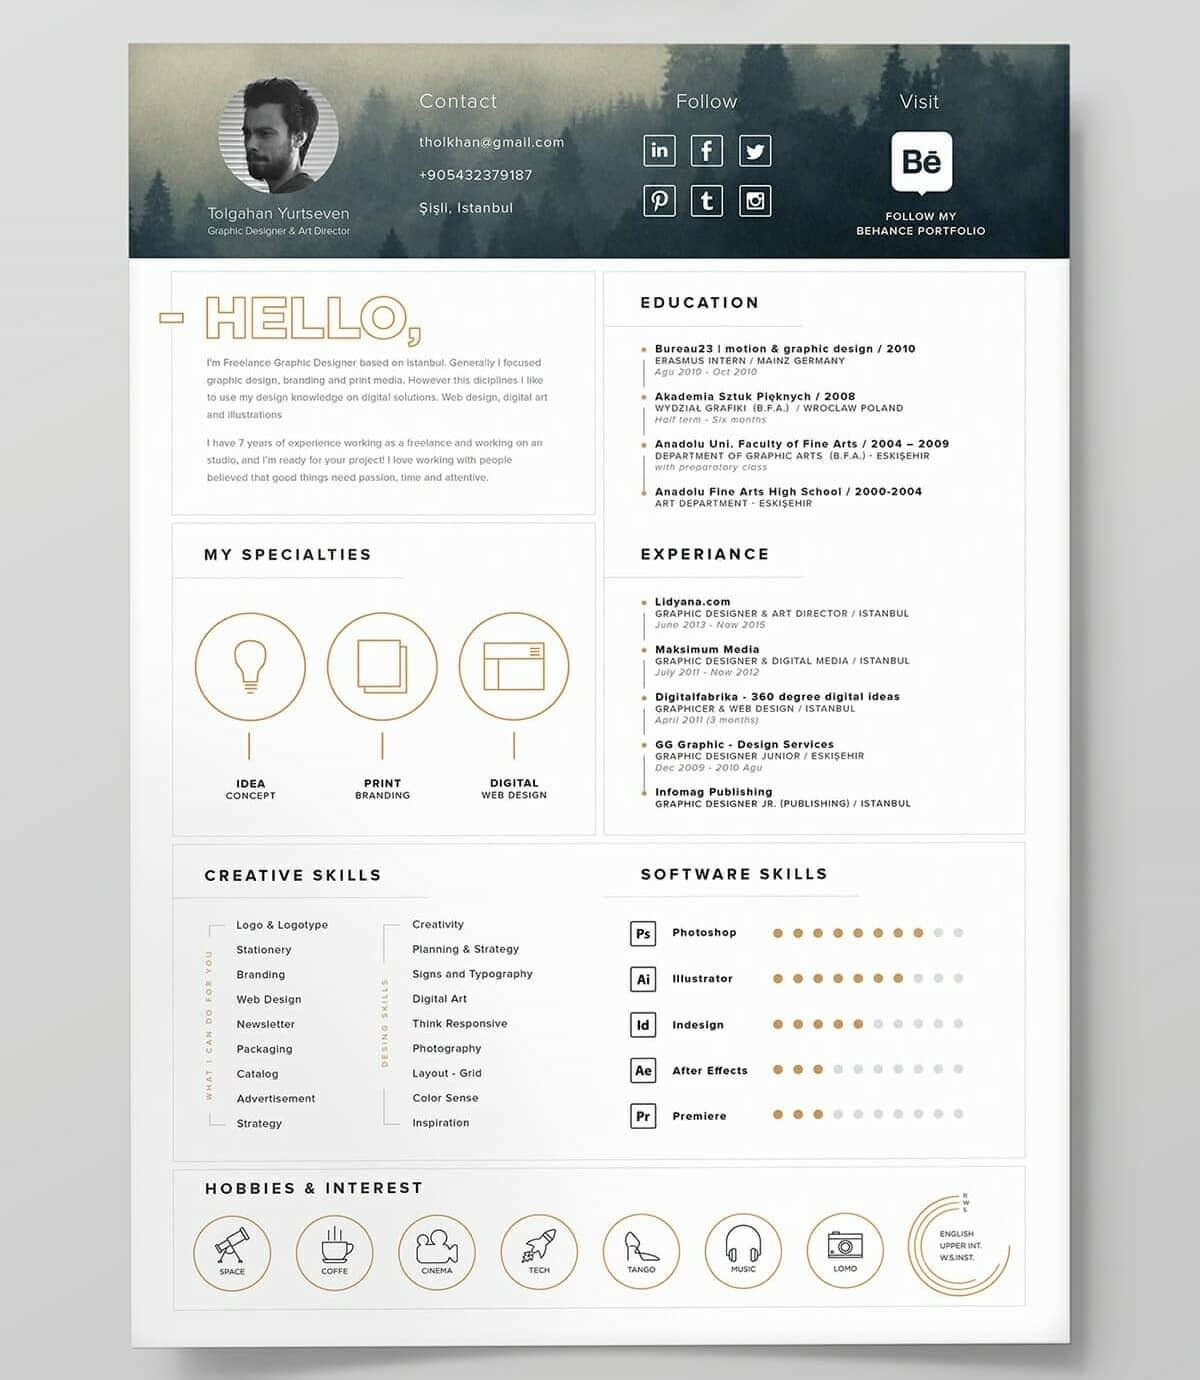 unique resume templates 15 downloadable templates to use now - Unique Resume Templates